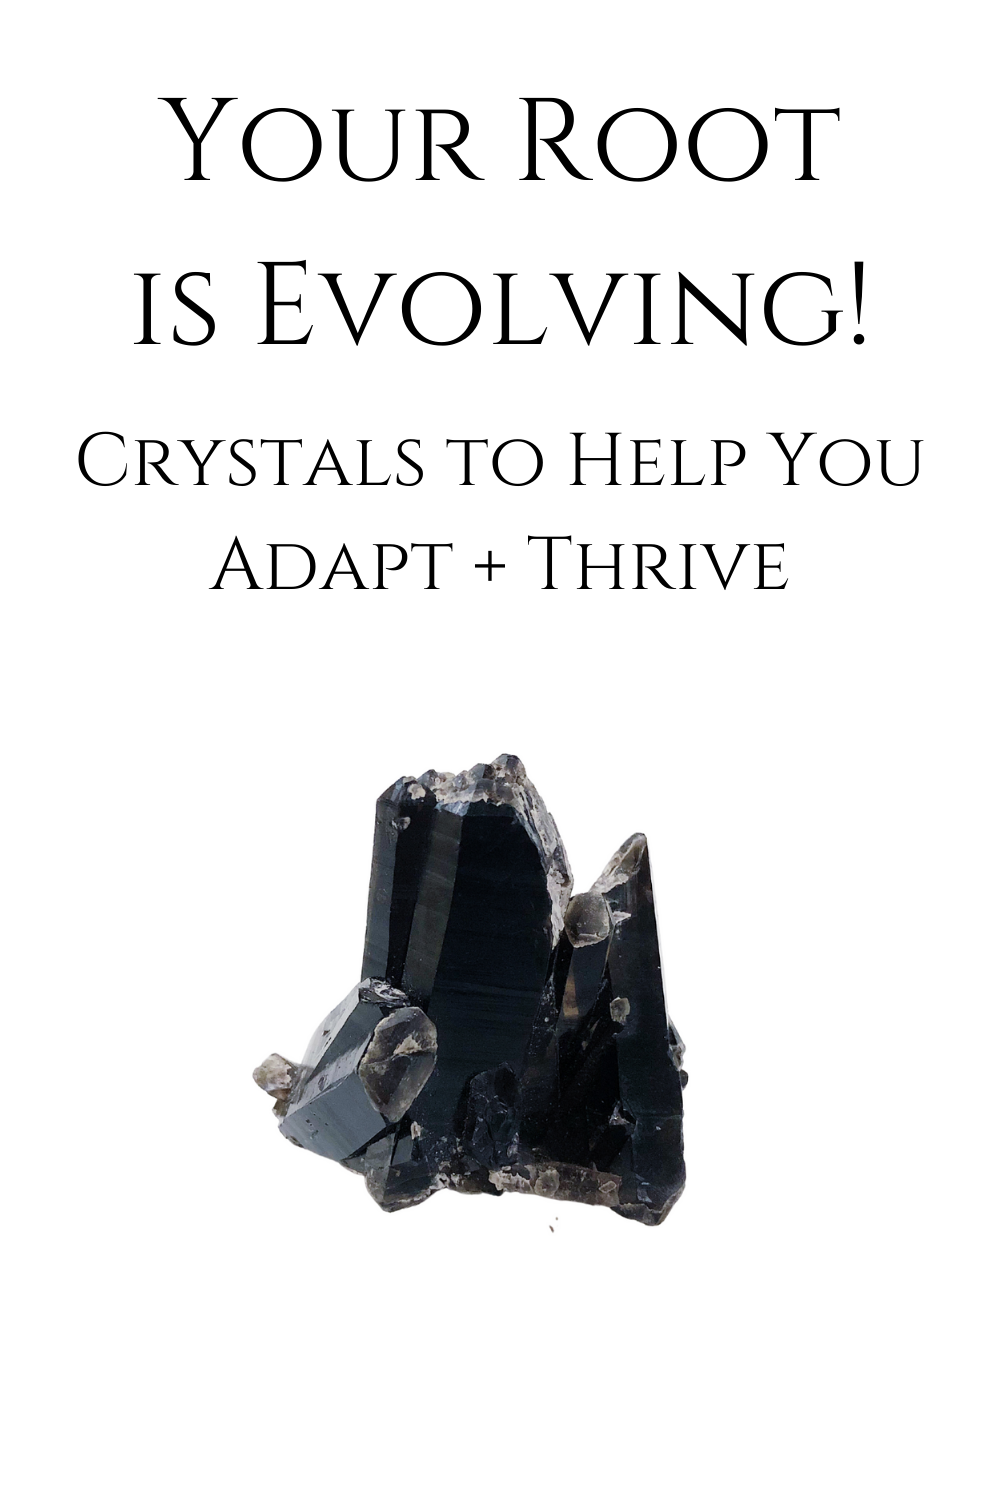 Your Root is Evolving: Crystals to Help You Adapt + Thrive / www.krista-mitchell.com